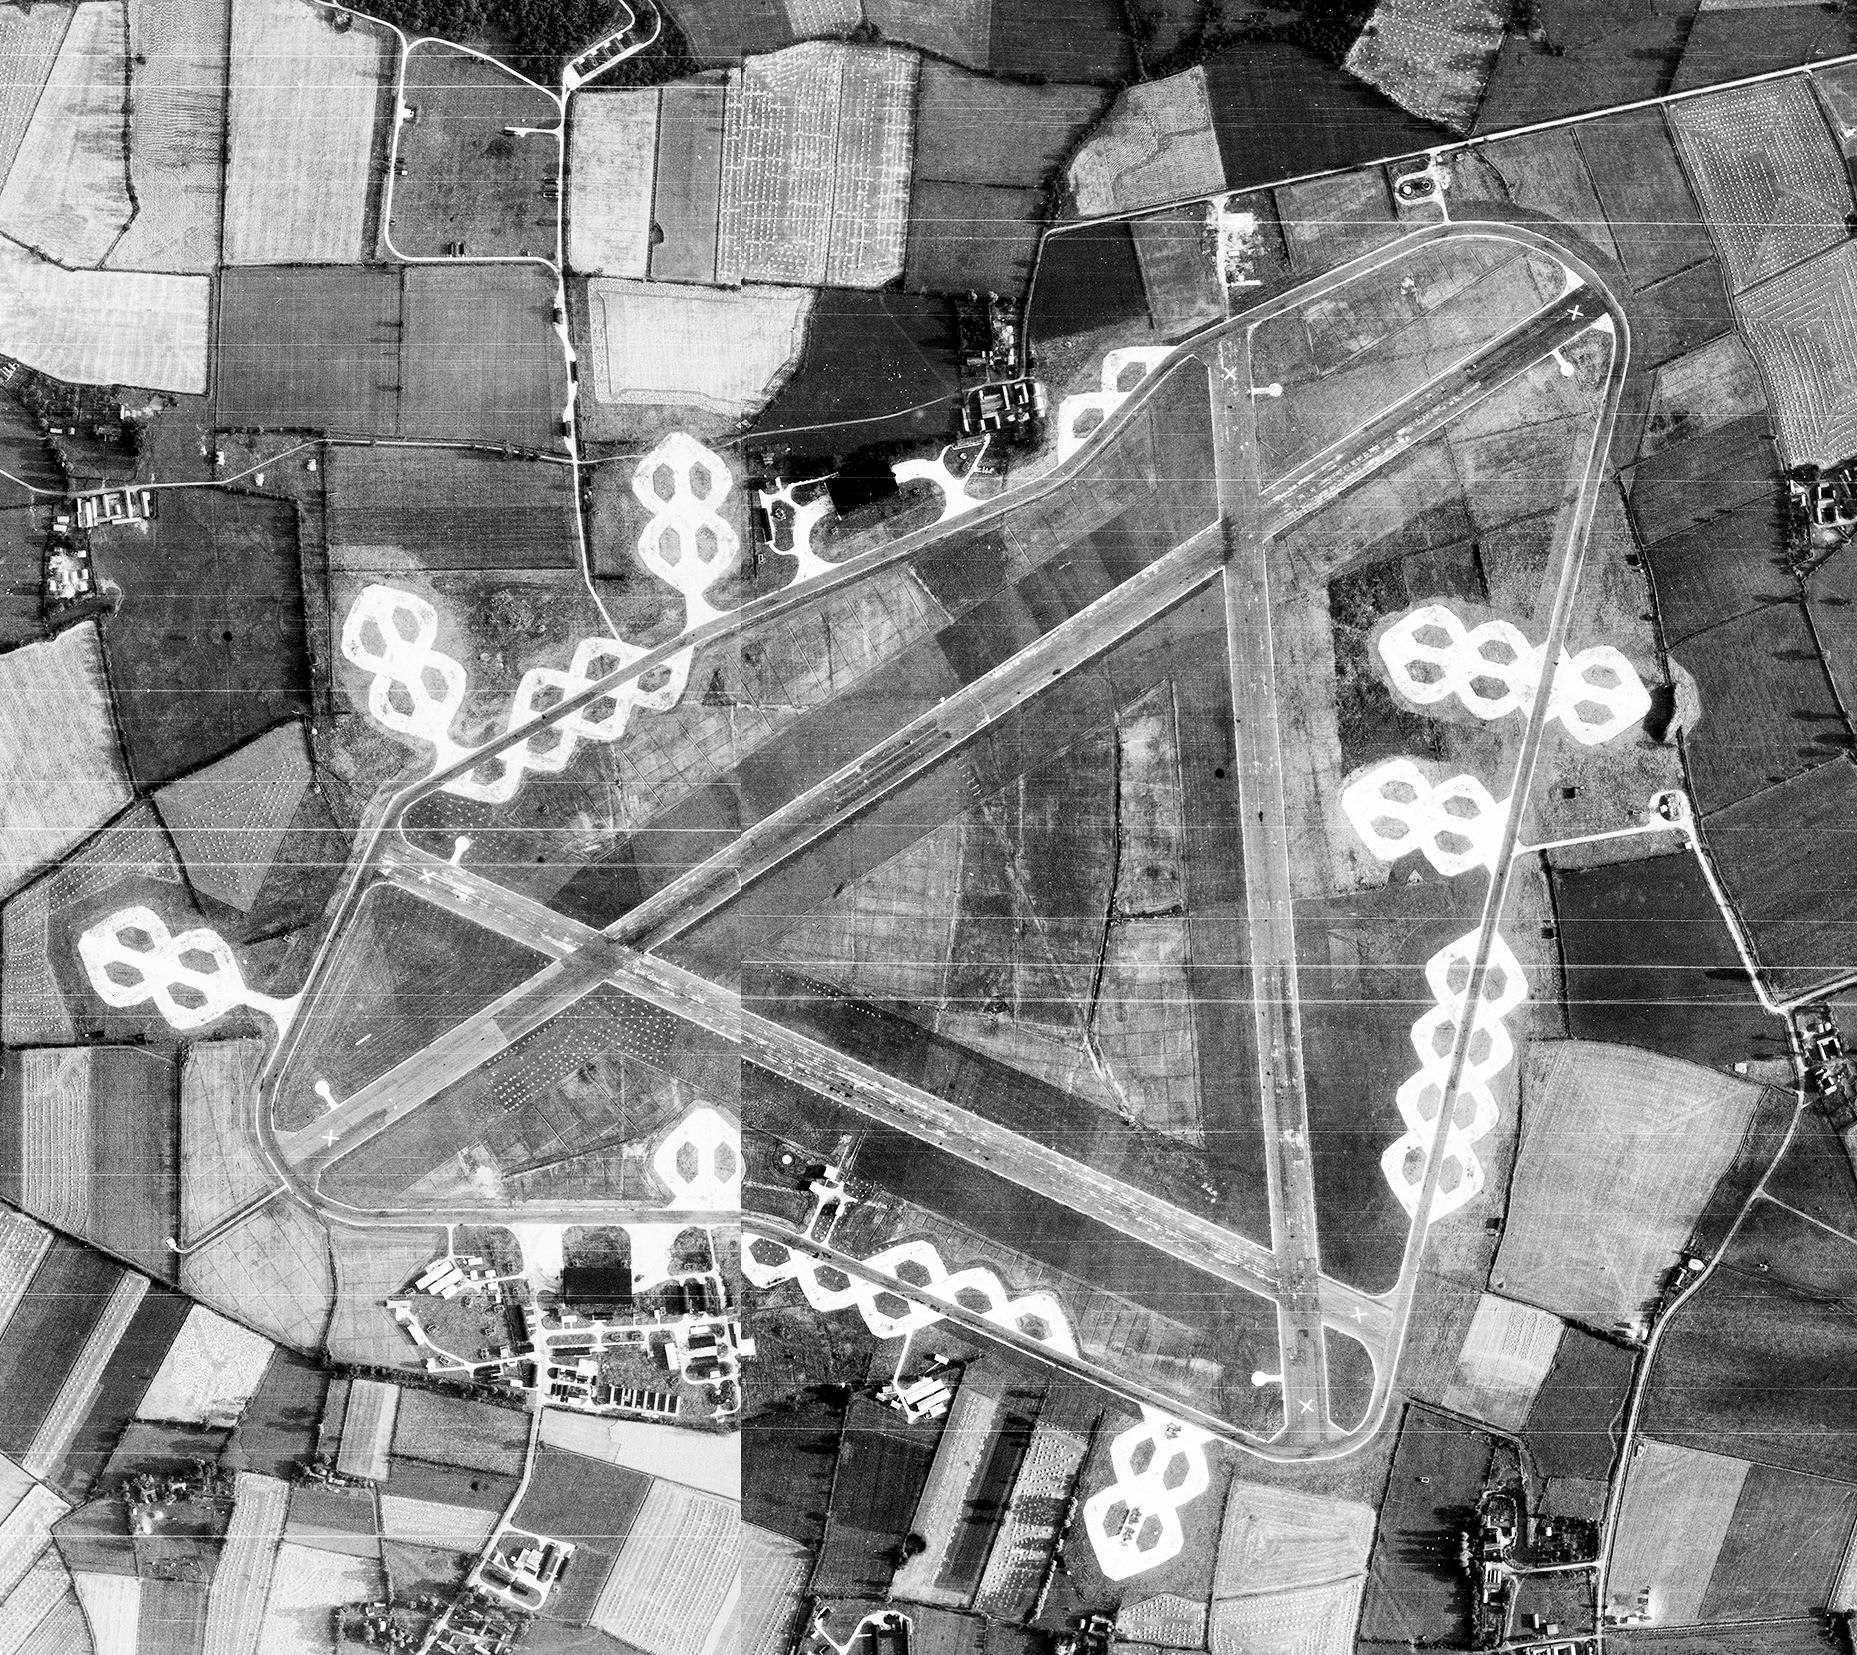 https://upload.wikimedia.org/wikipedia/commons/1/15/RAF_Fersfield_-_29_Aug_1946_Airfield.jpg